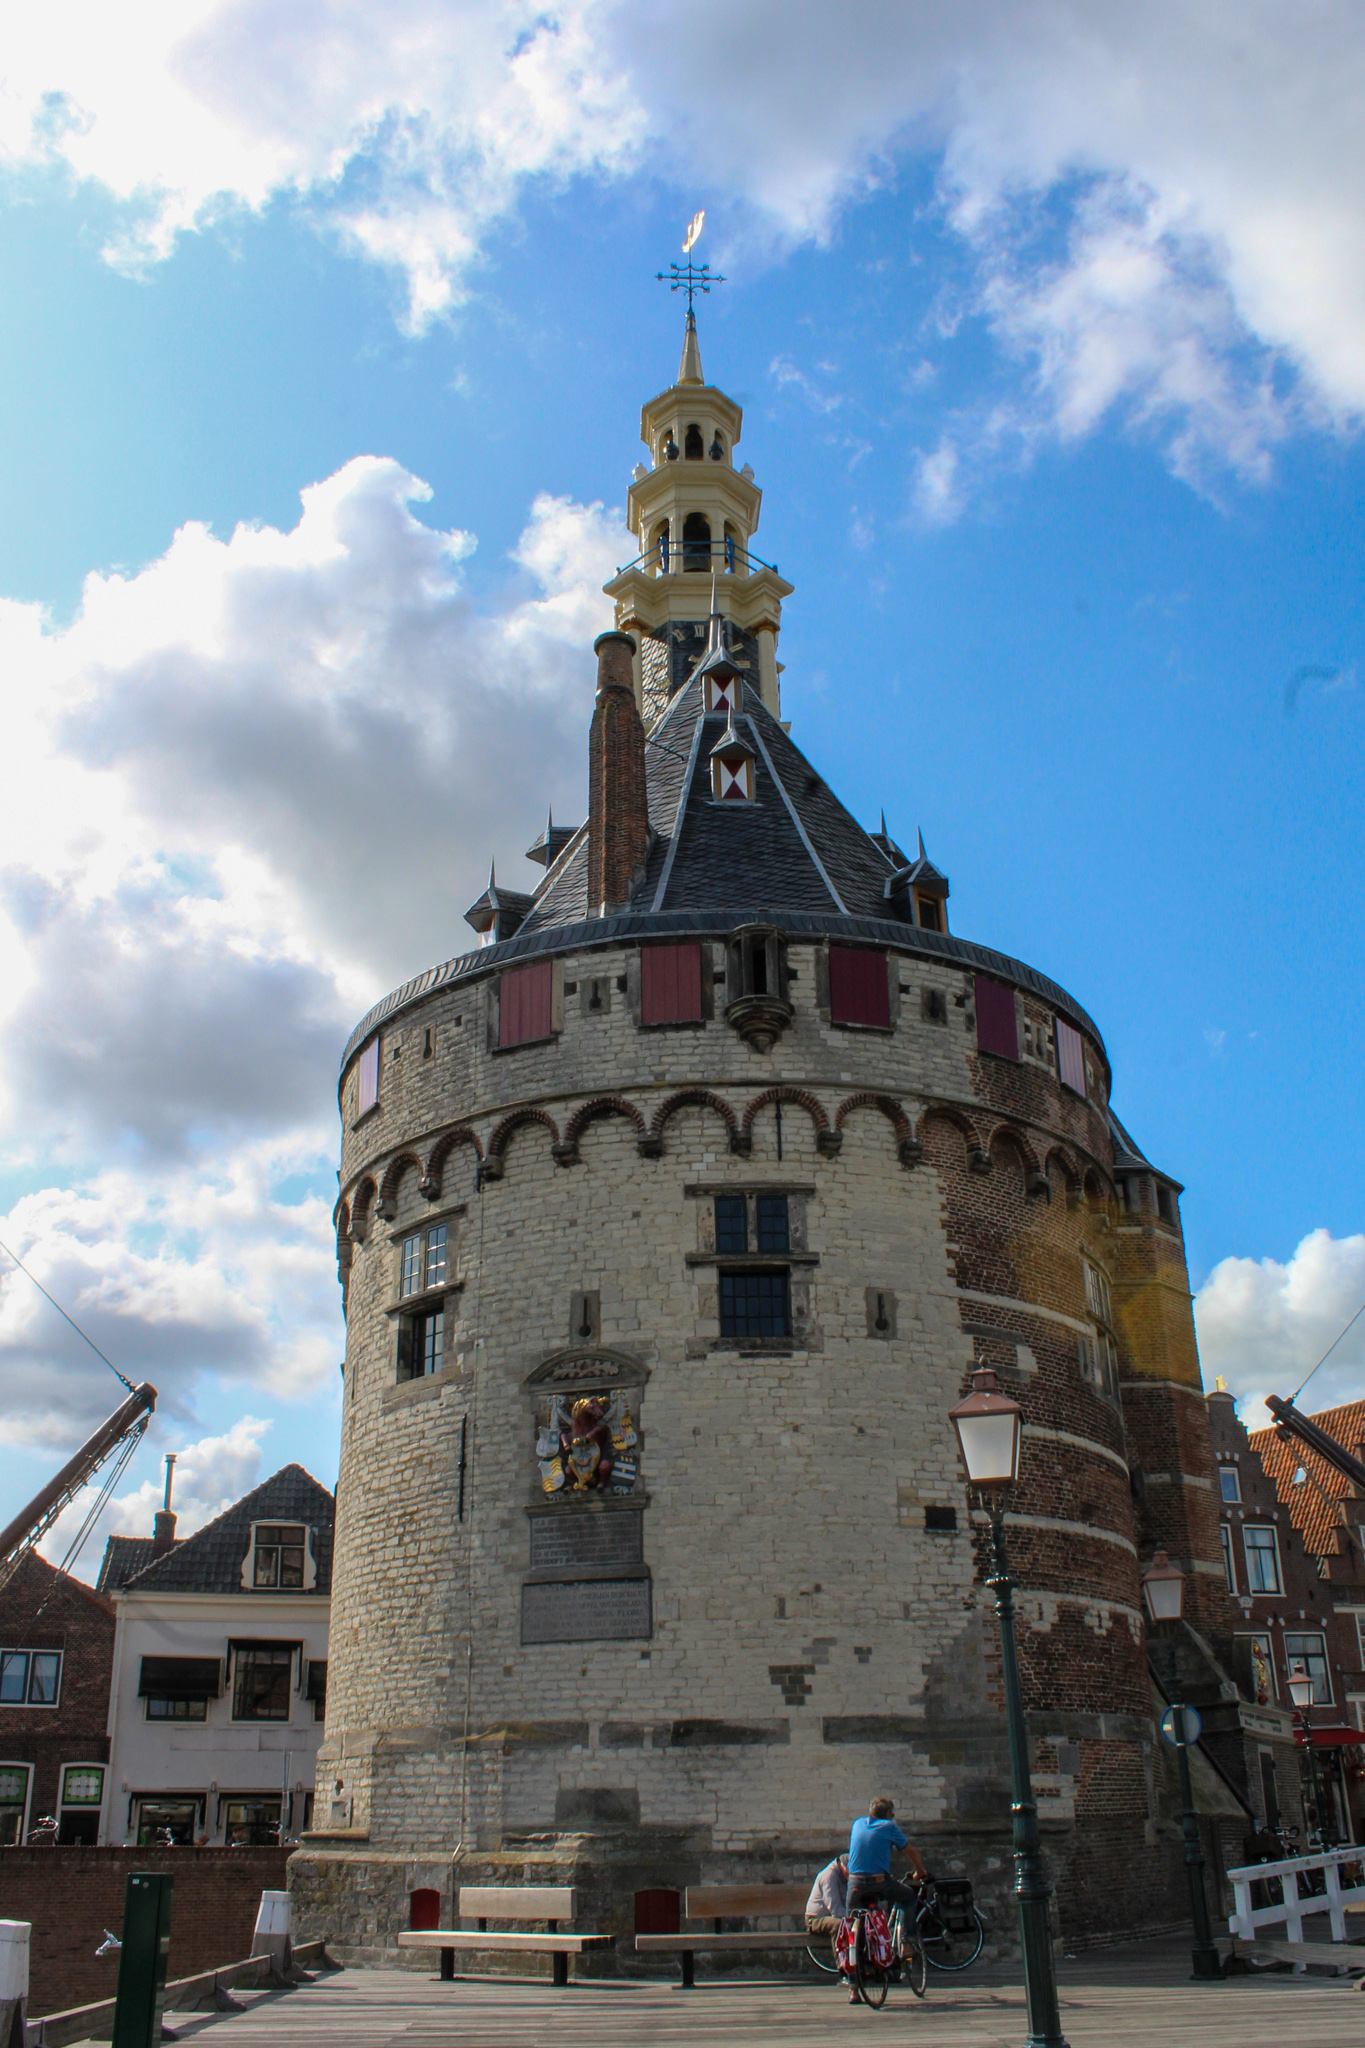 what to do in hoorn? see pretty buildings